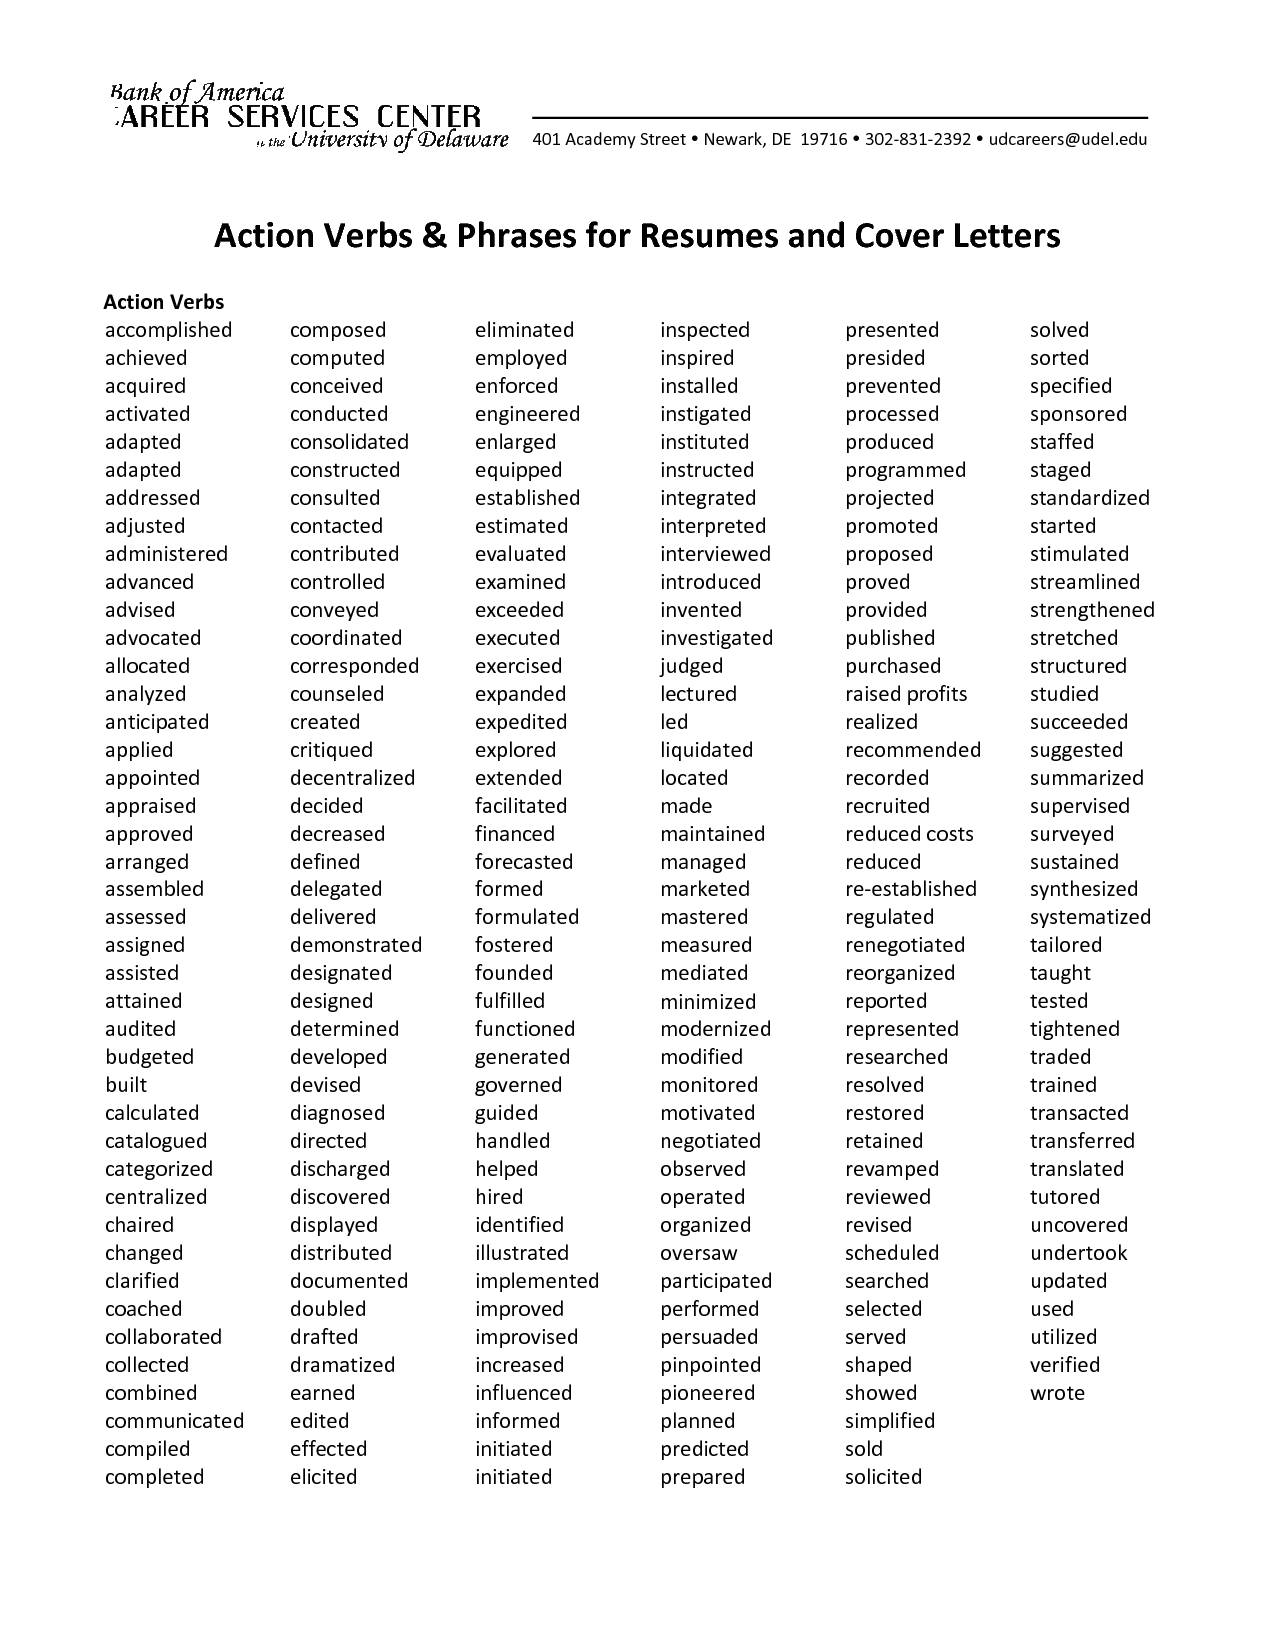 Action Verbs Phrases for Resumes and Cover Letters | education ...